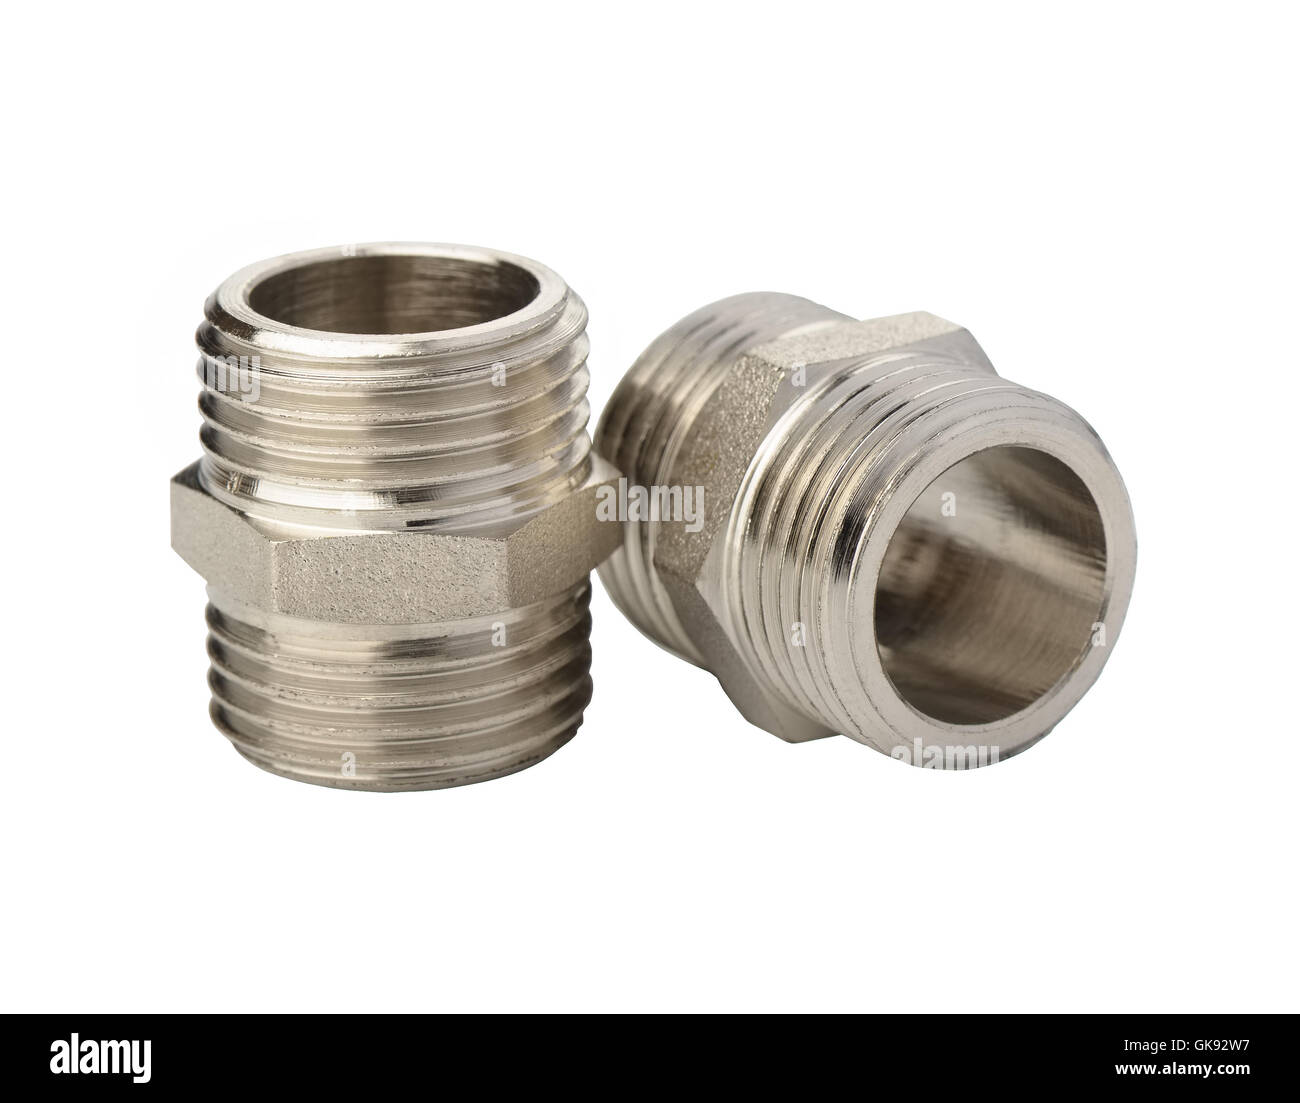 Fasteners of metal for flexible hoses on a white background - Stock Image